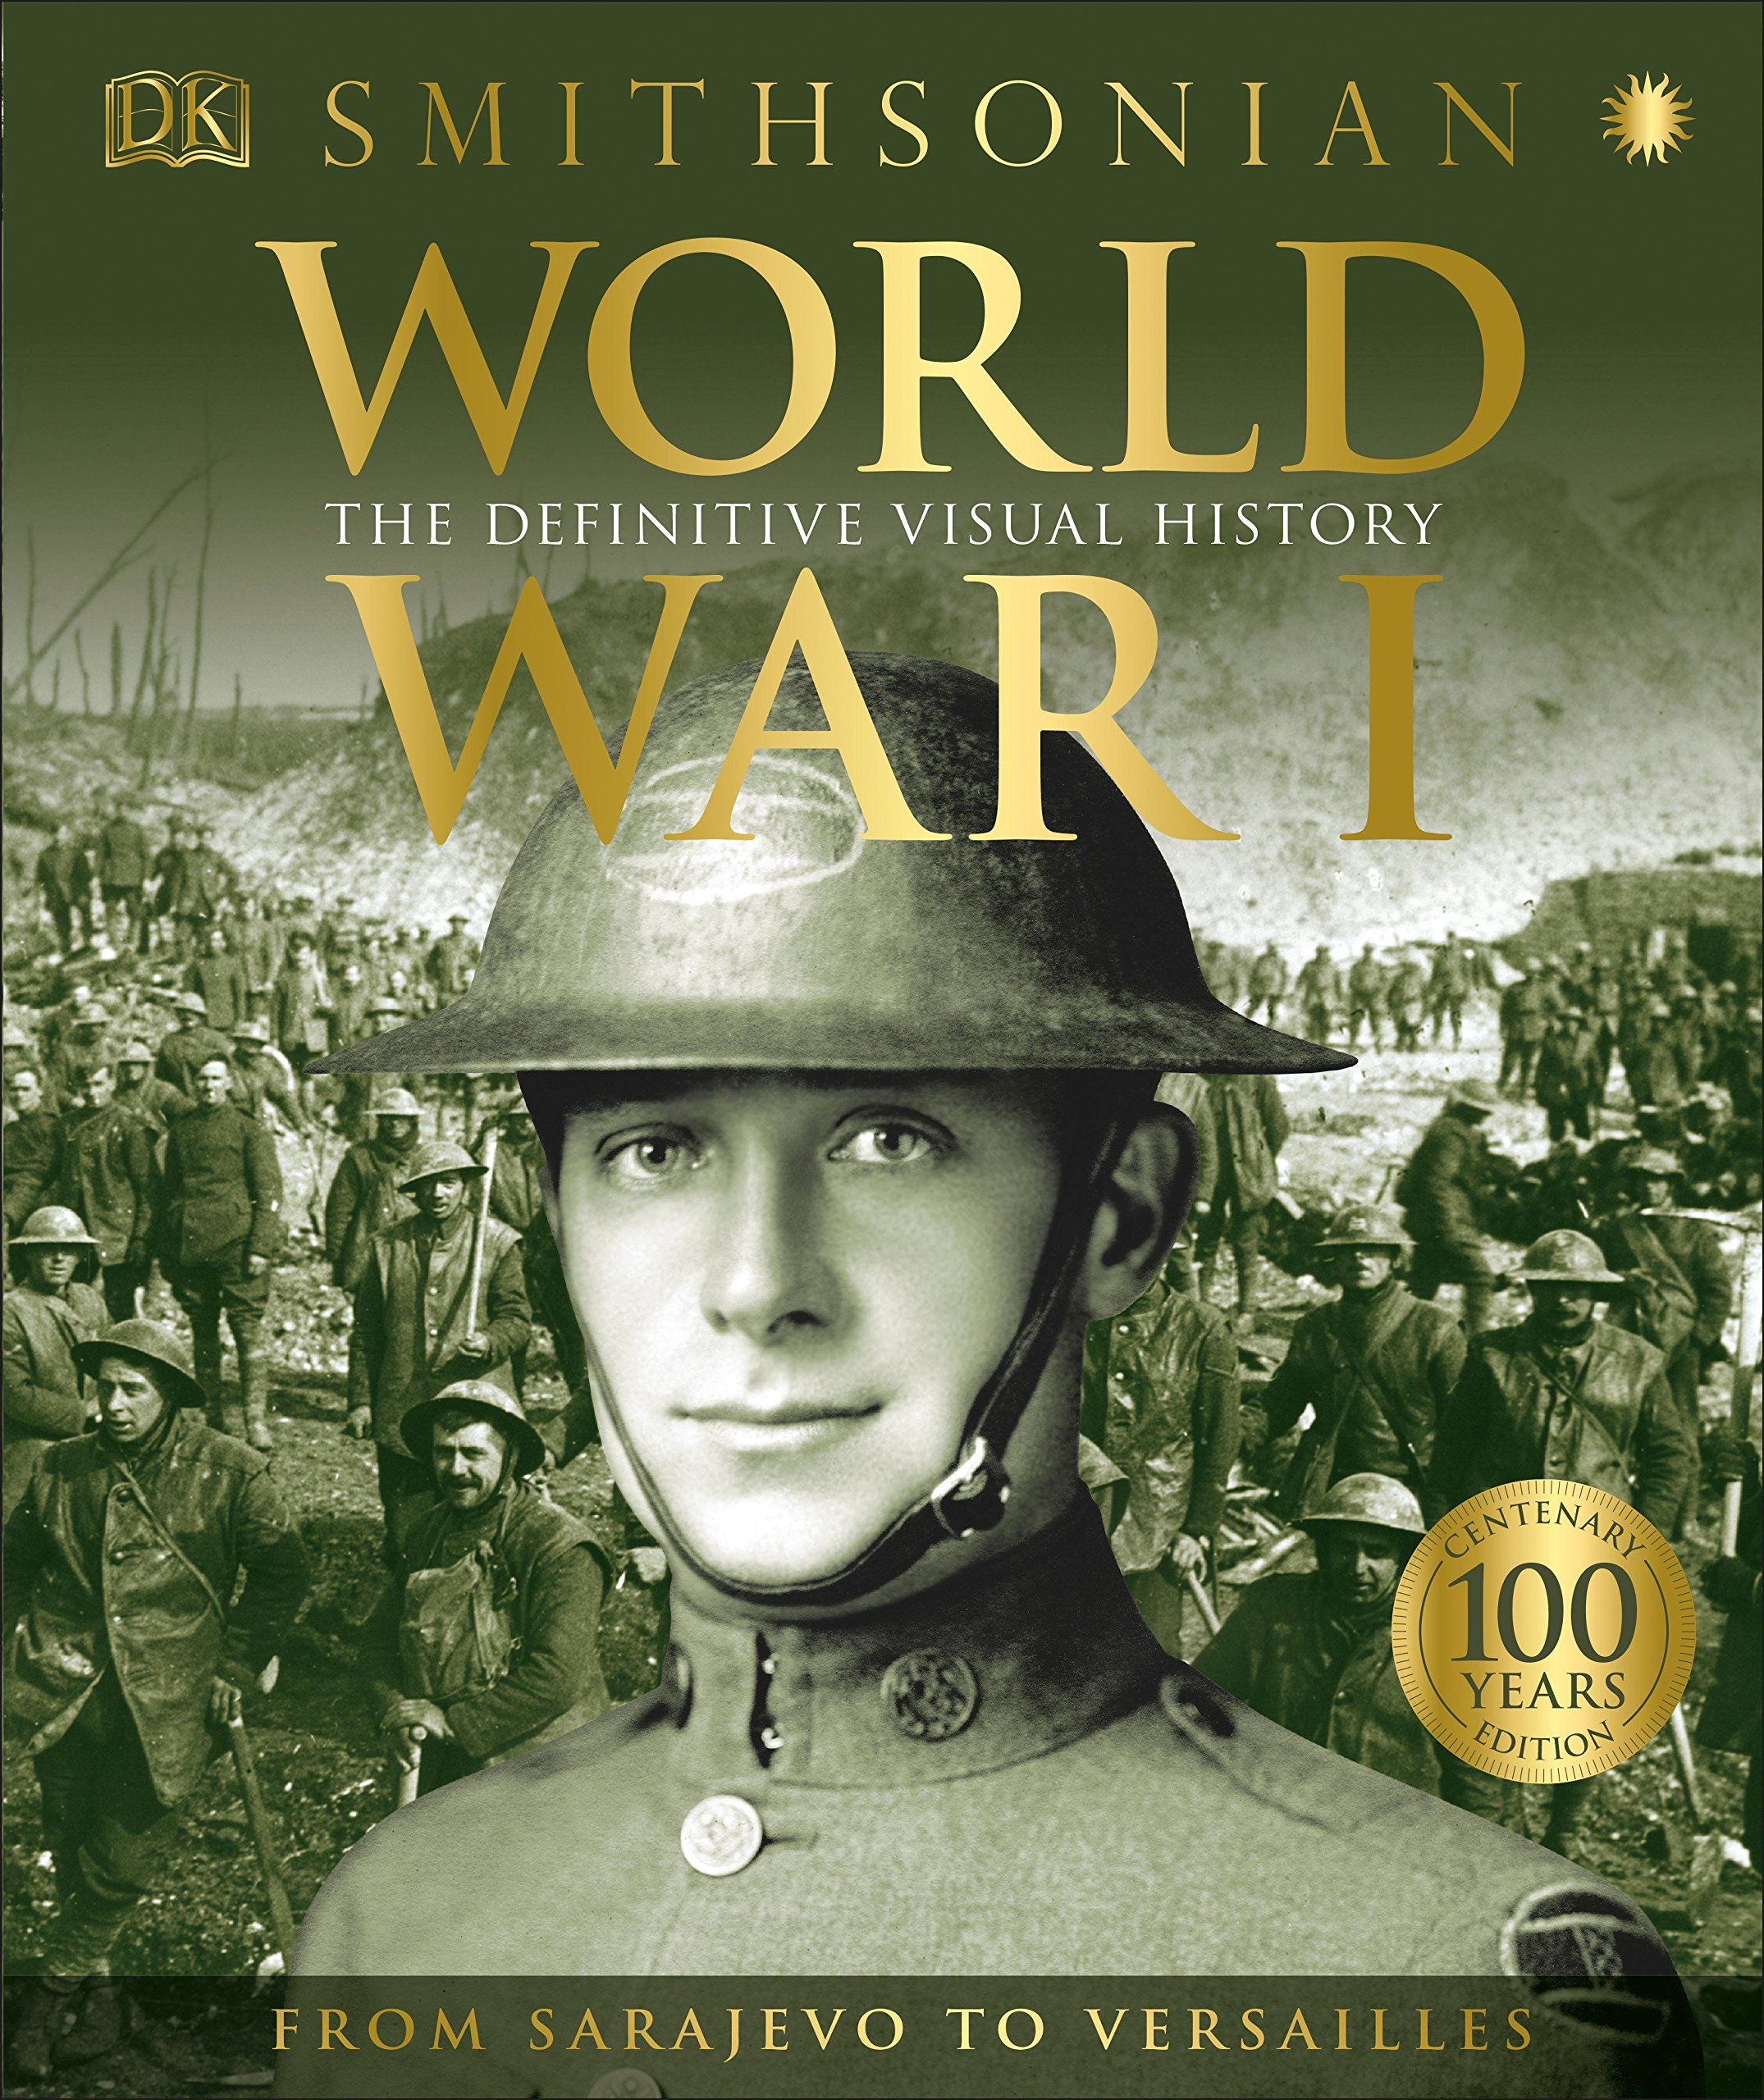 World War I: The Definitive Visual History by DK